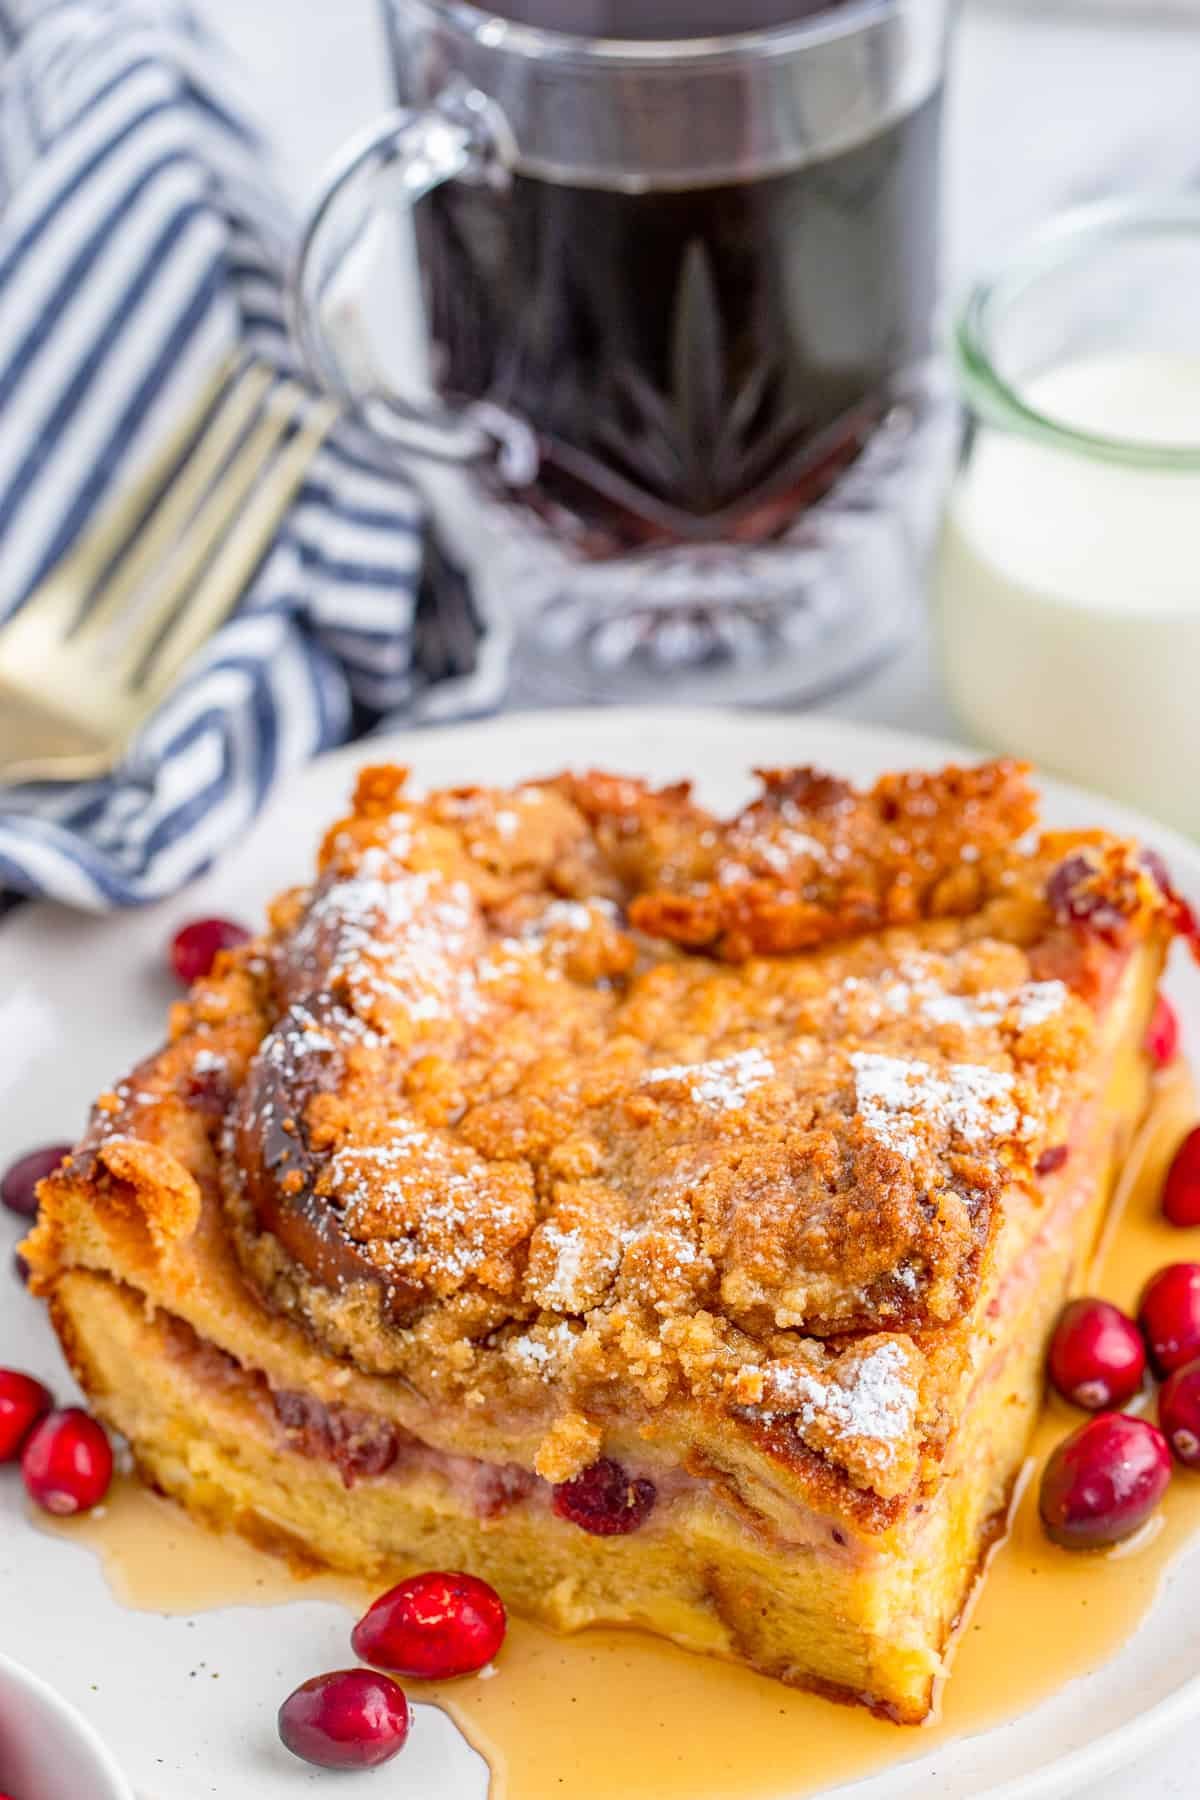 Cranberry Overnight French Toast on plate drizzled in syrup